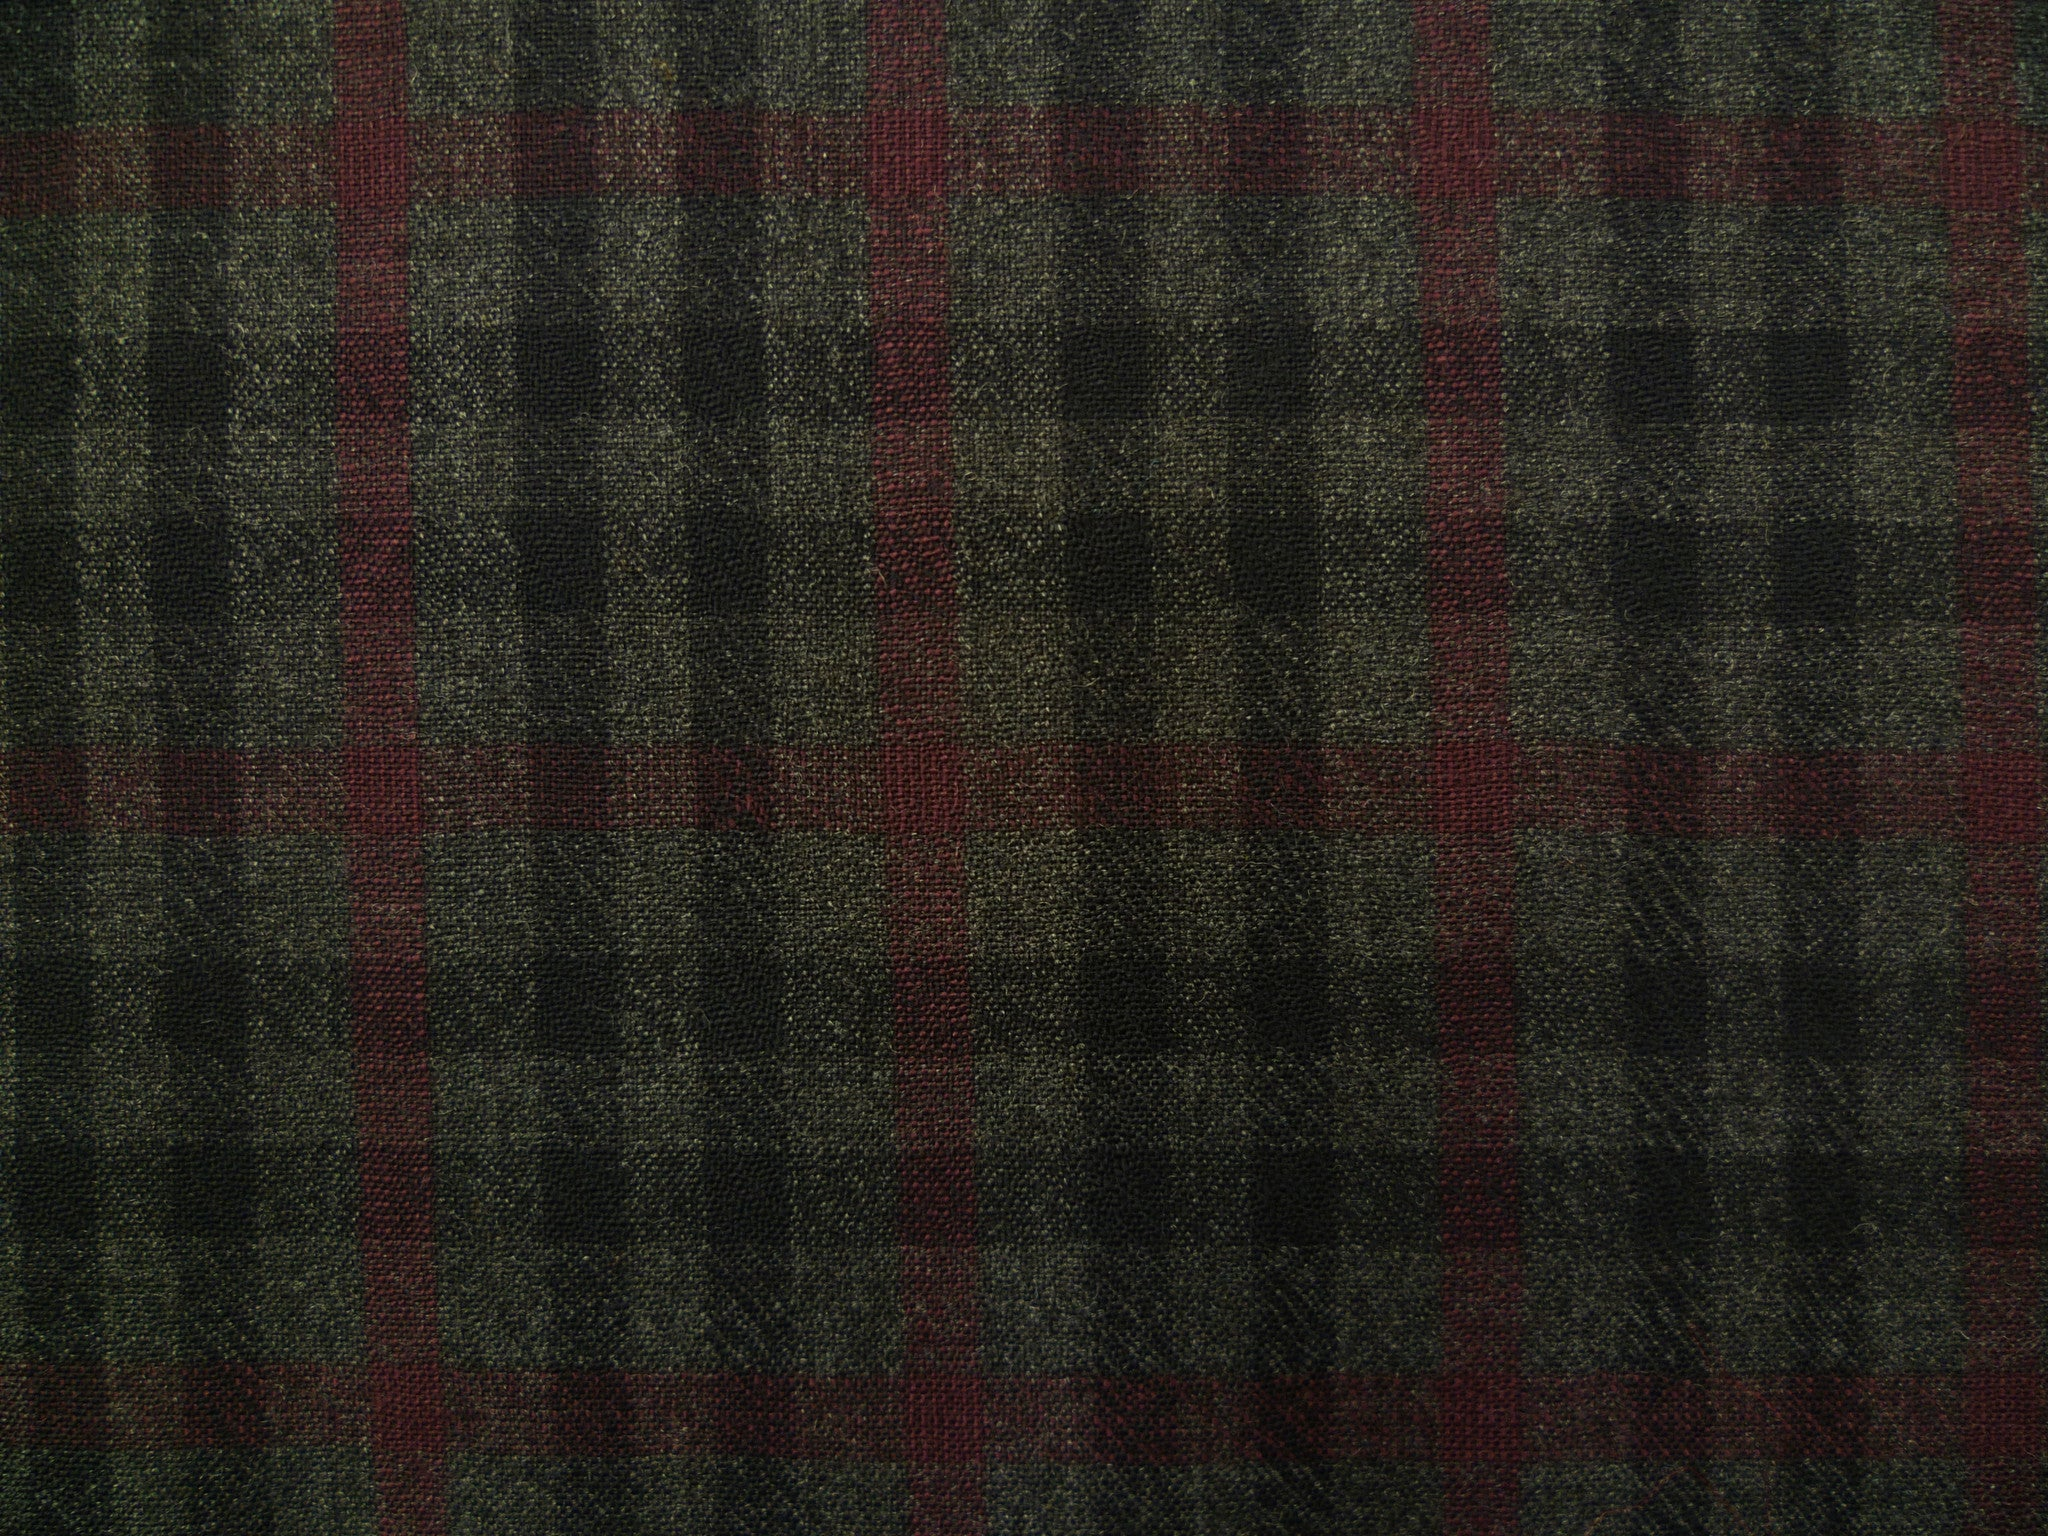 Pewter Grey, Charcoal and Burgundy Overchecked Wool